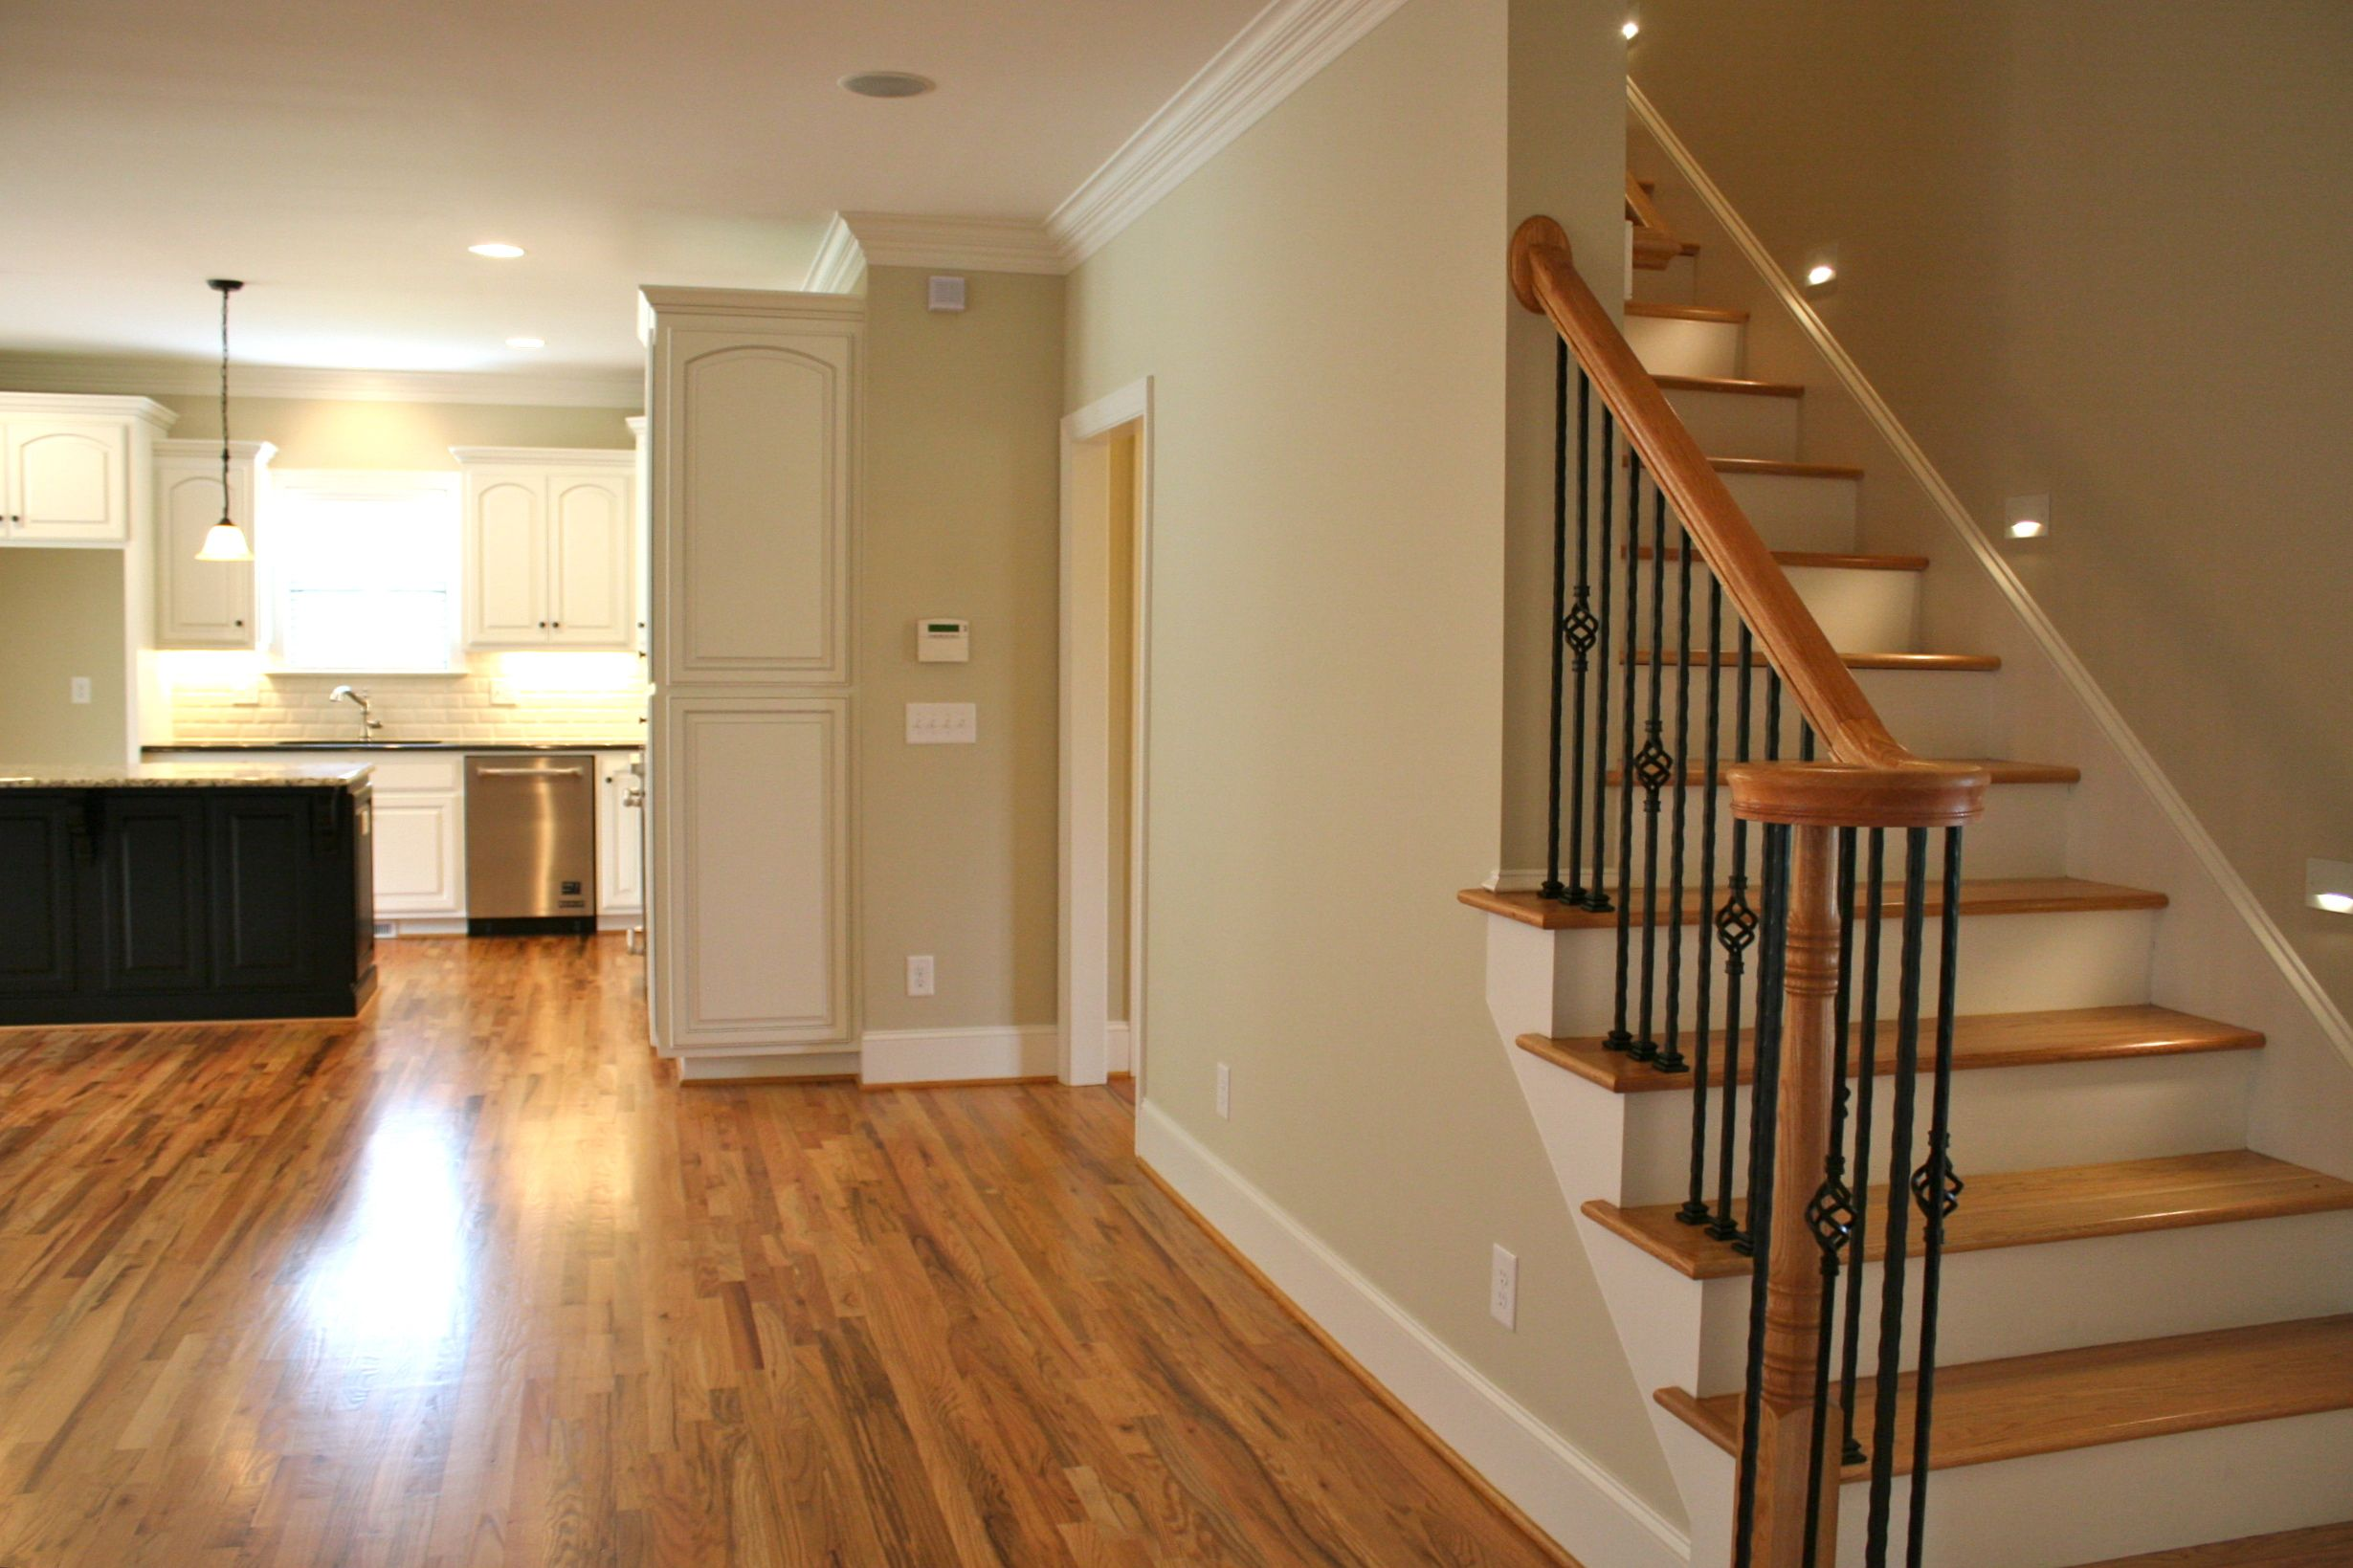 Living Area featured in The Tranquility Creek By Four Seasons Contractors in Rocky Mount, NC